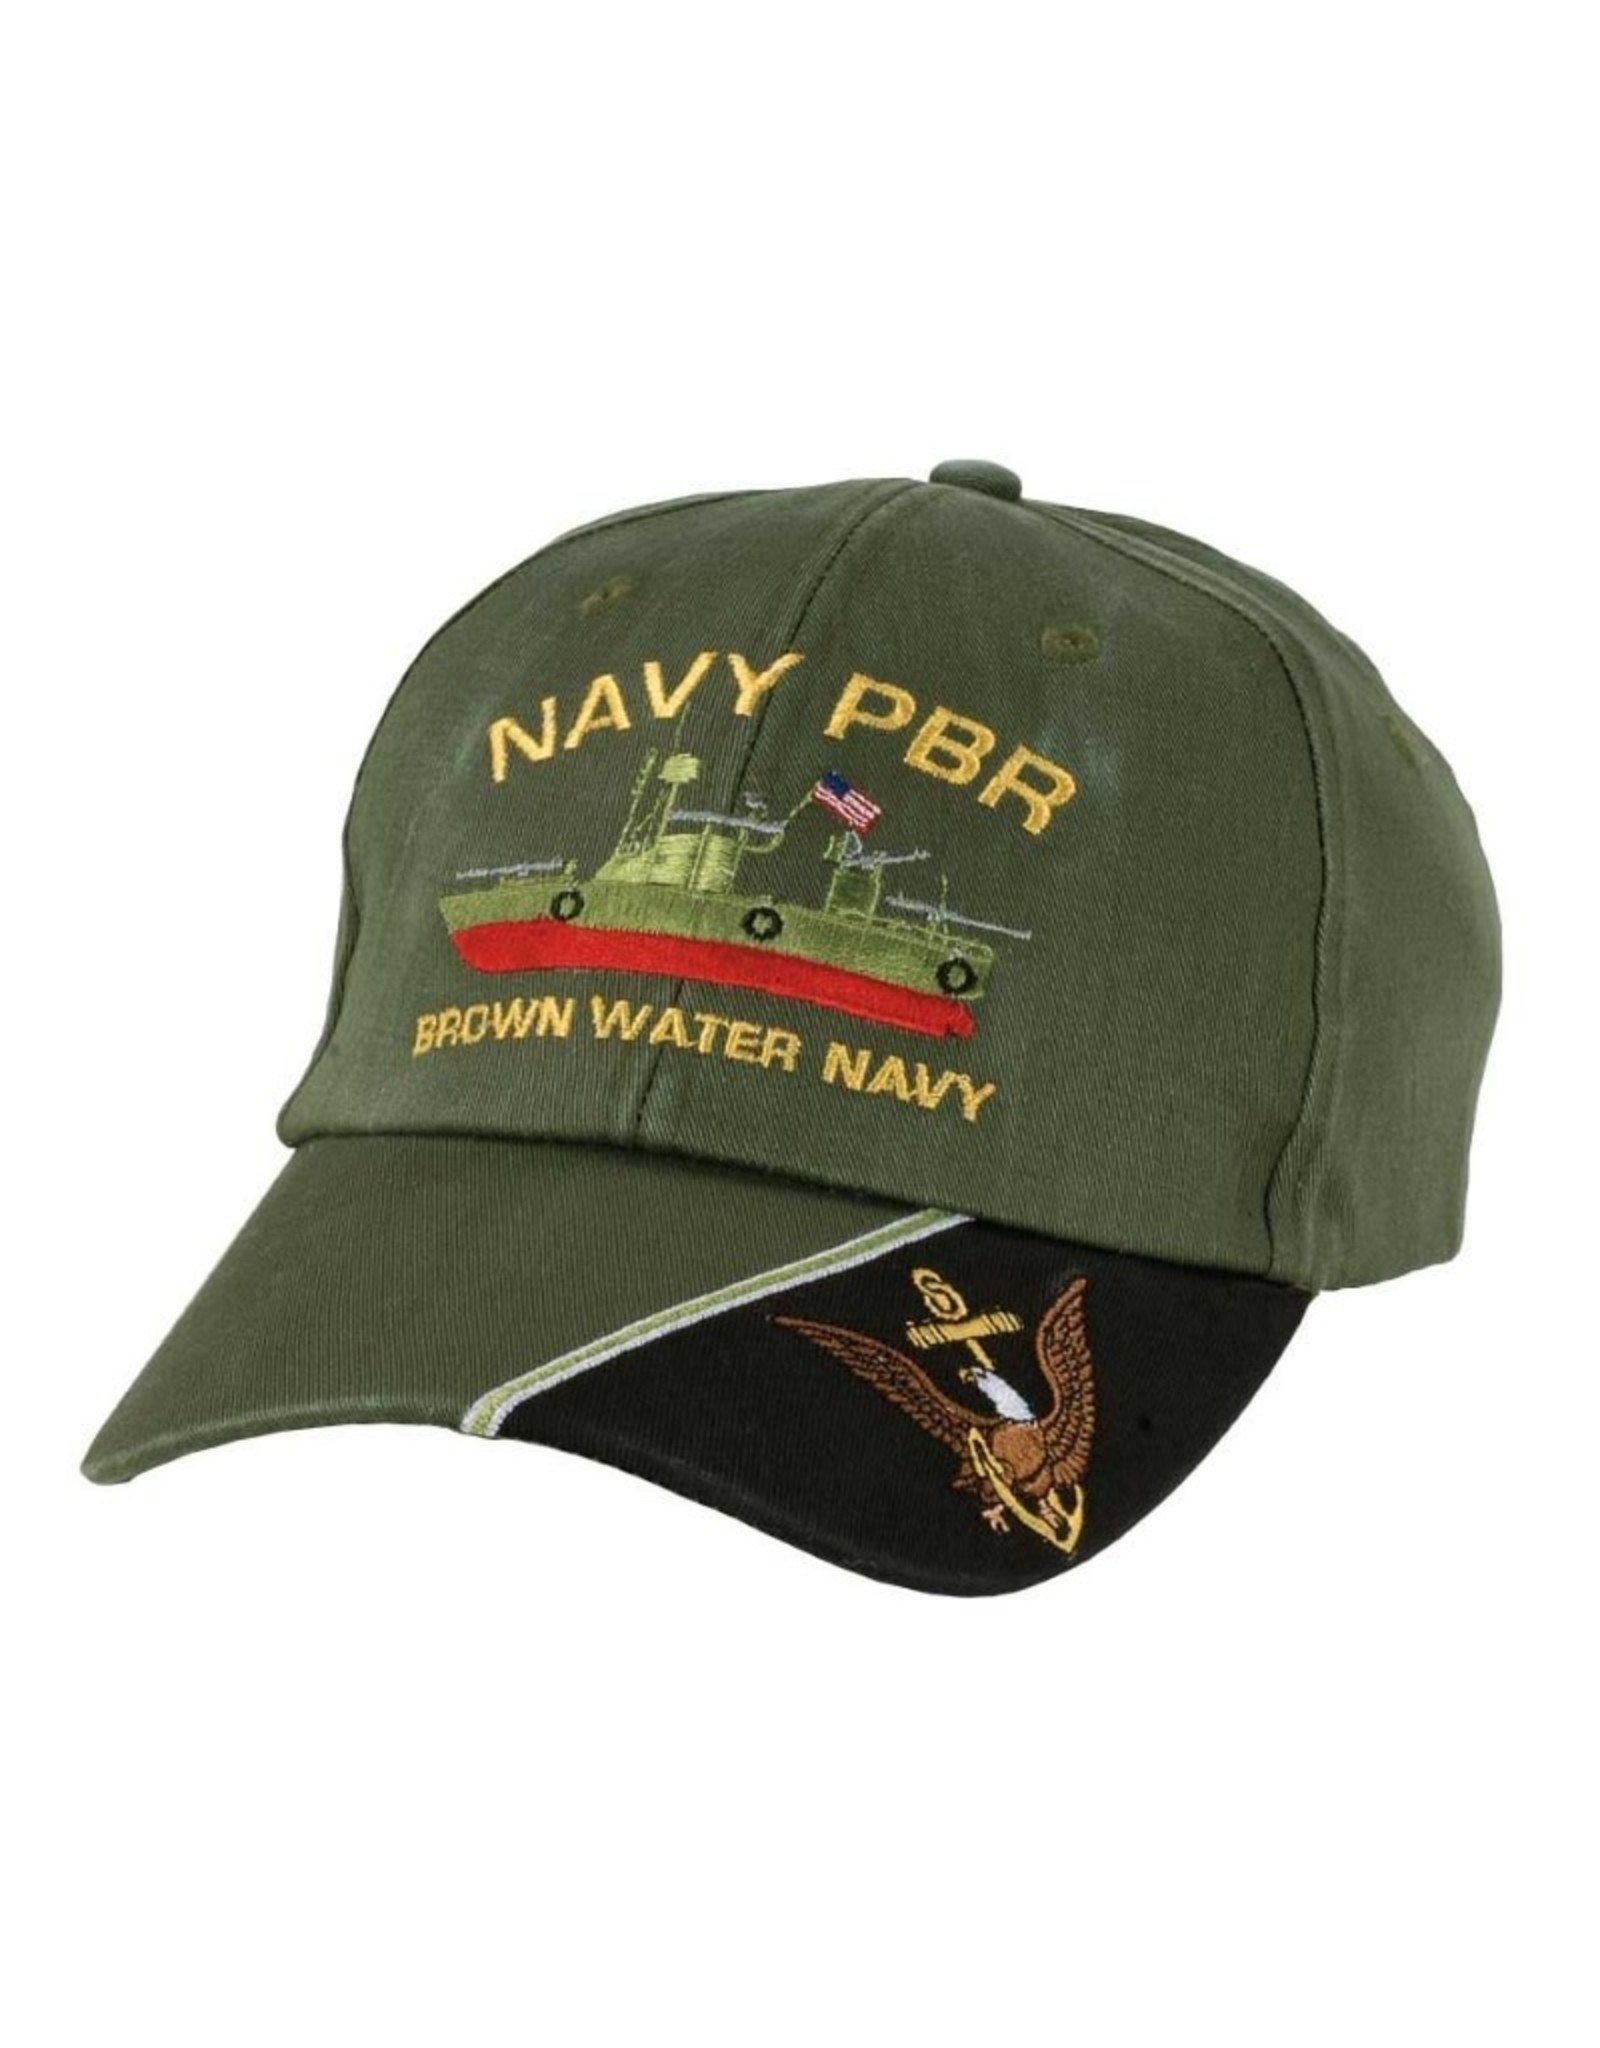 """MidMil Navy PBR Hat with Profile and Motto """"Brown Water Navy"""" Olive Drab"""